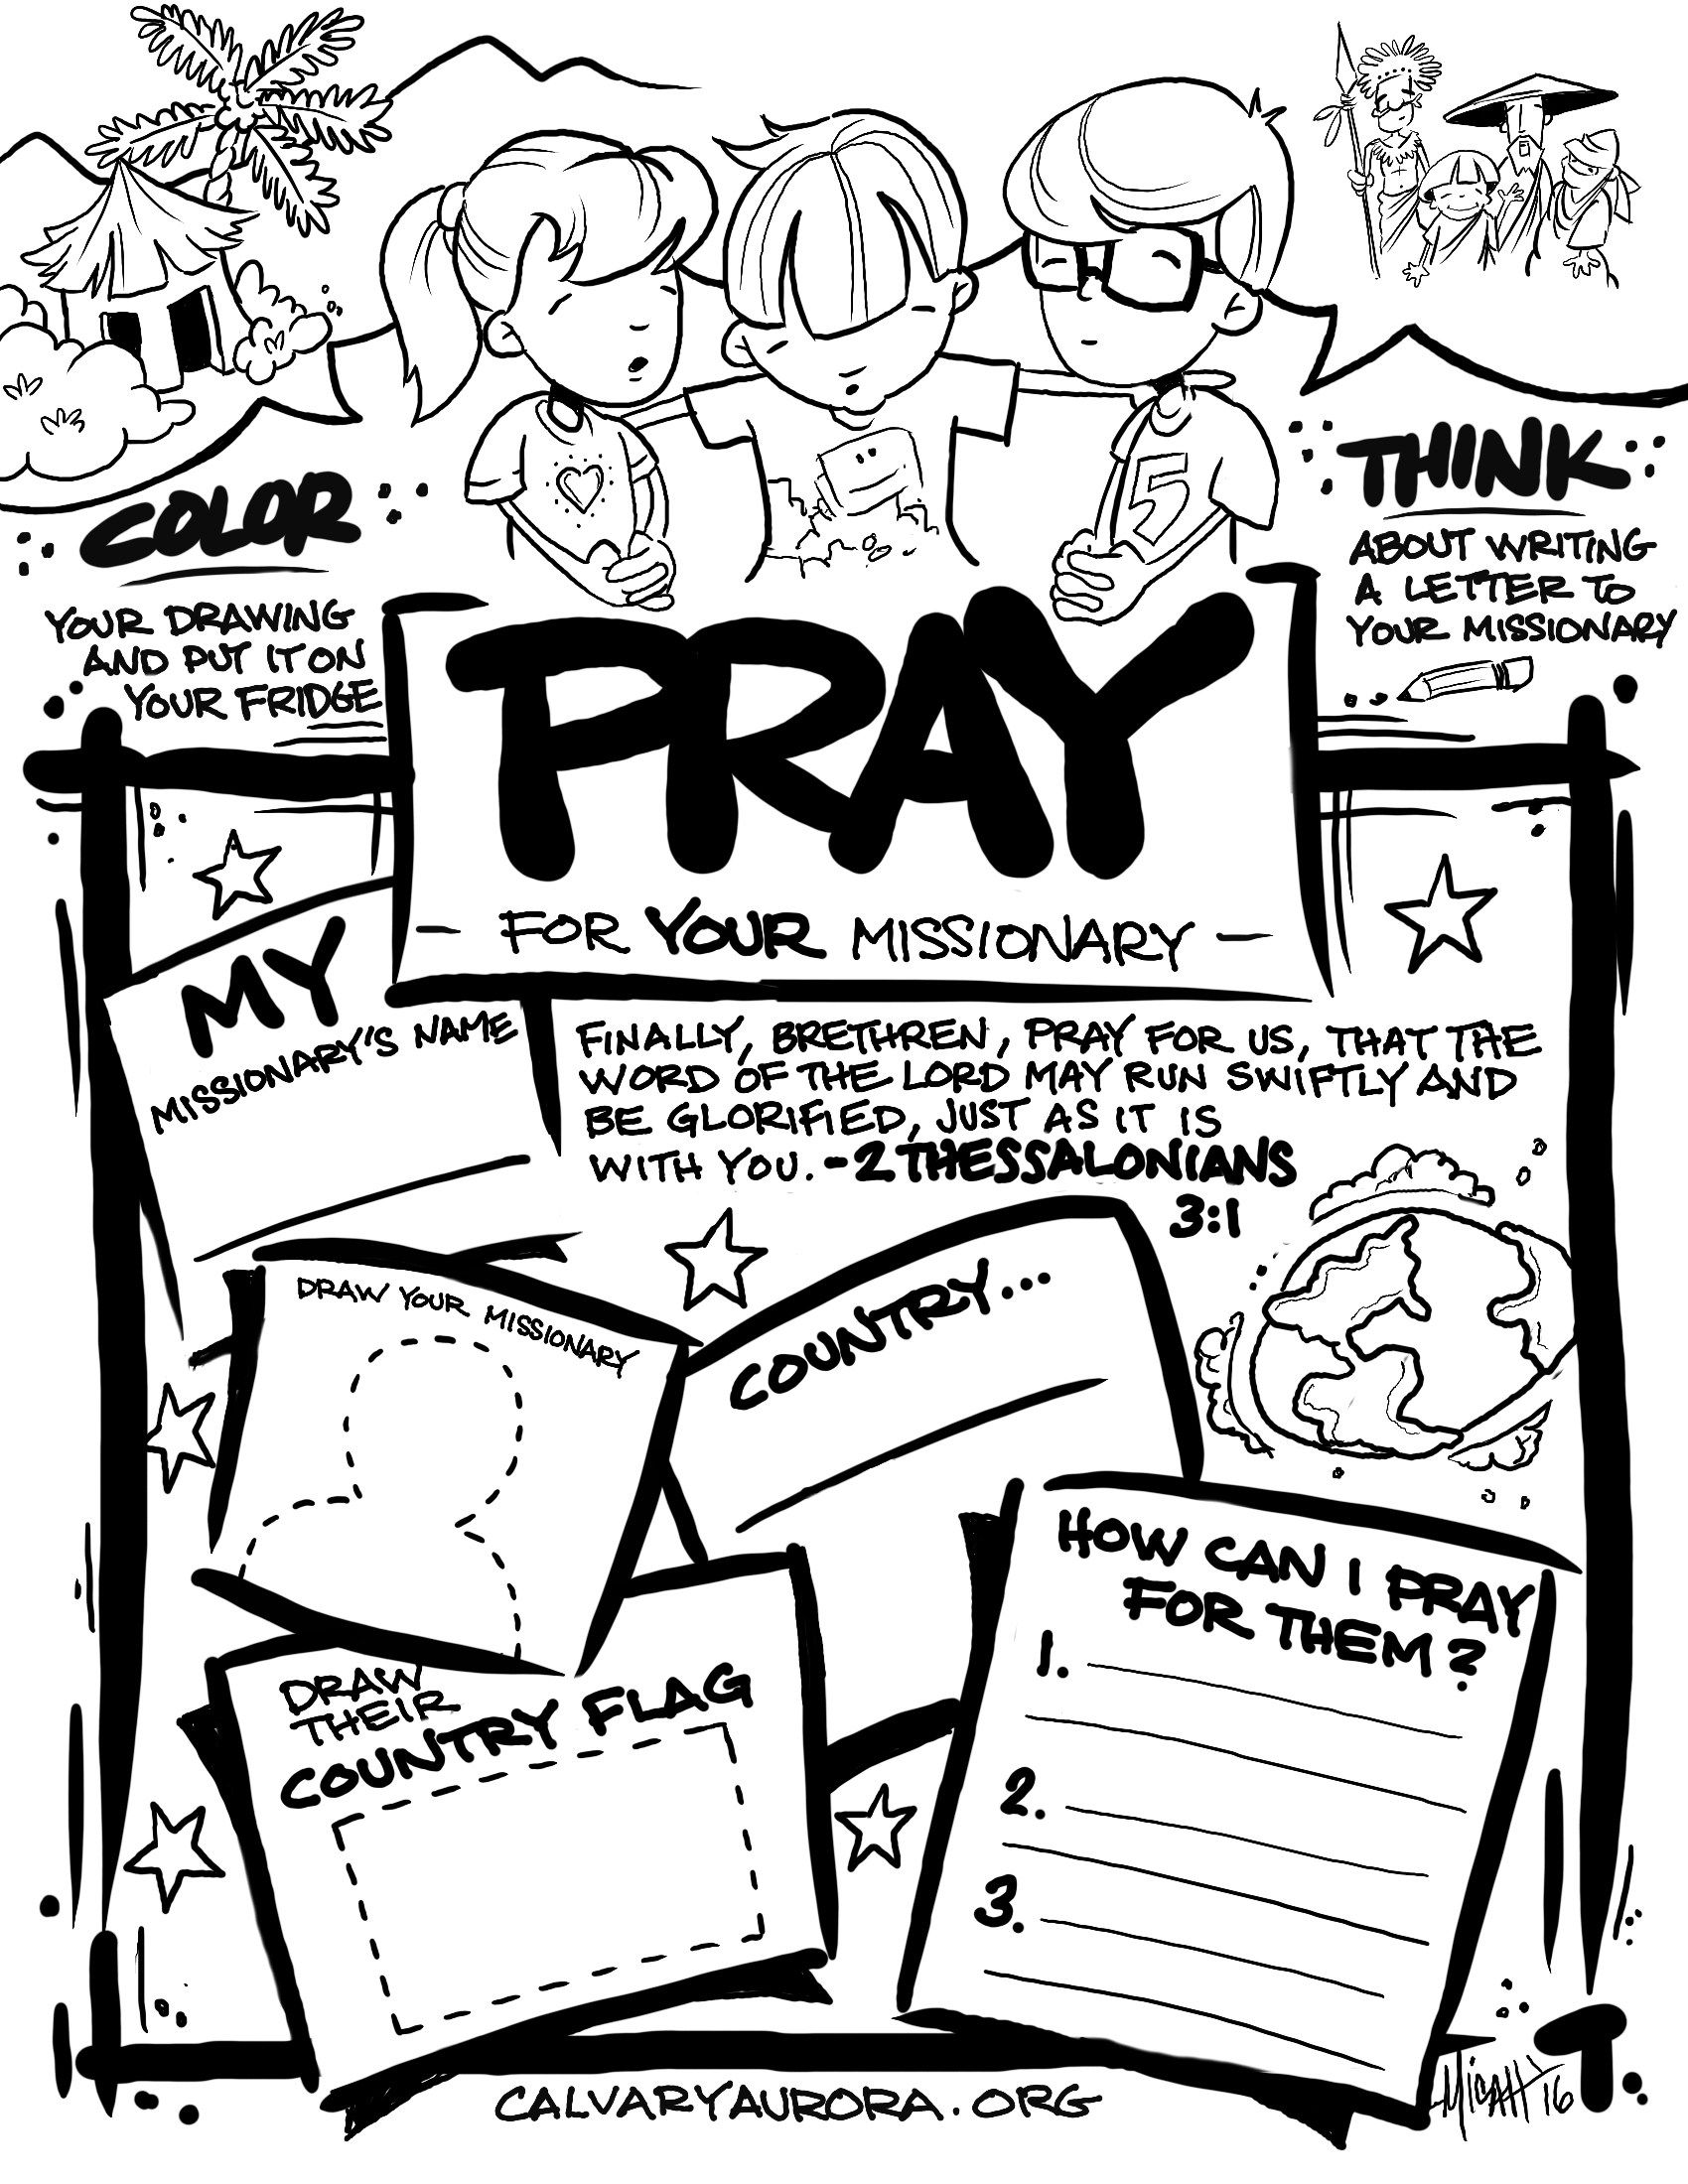 Missionary Prayer Pages for Children (With images